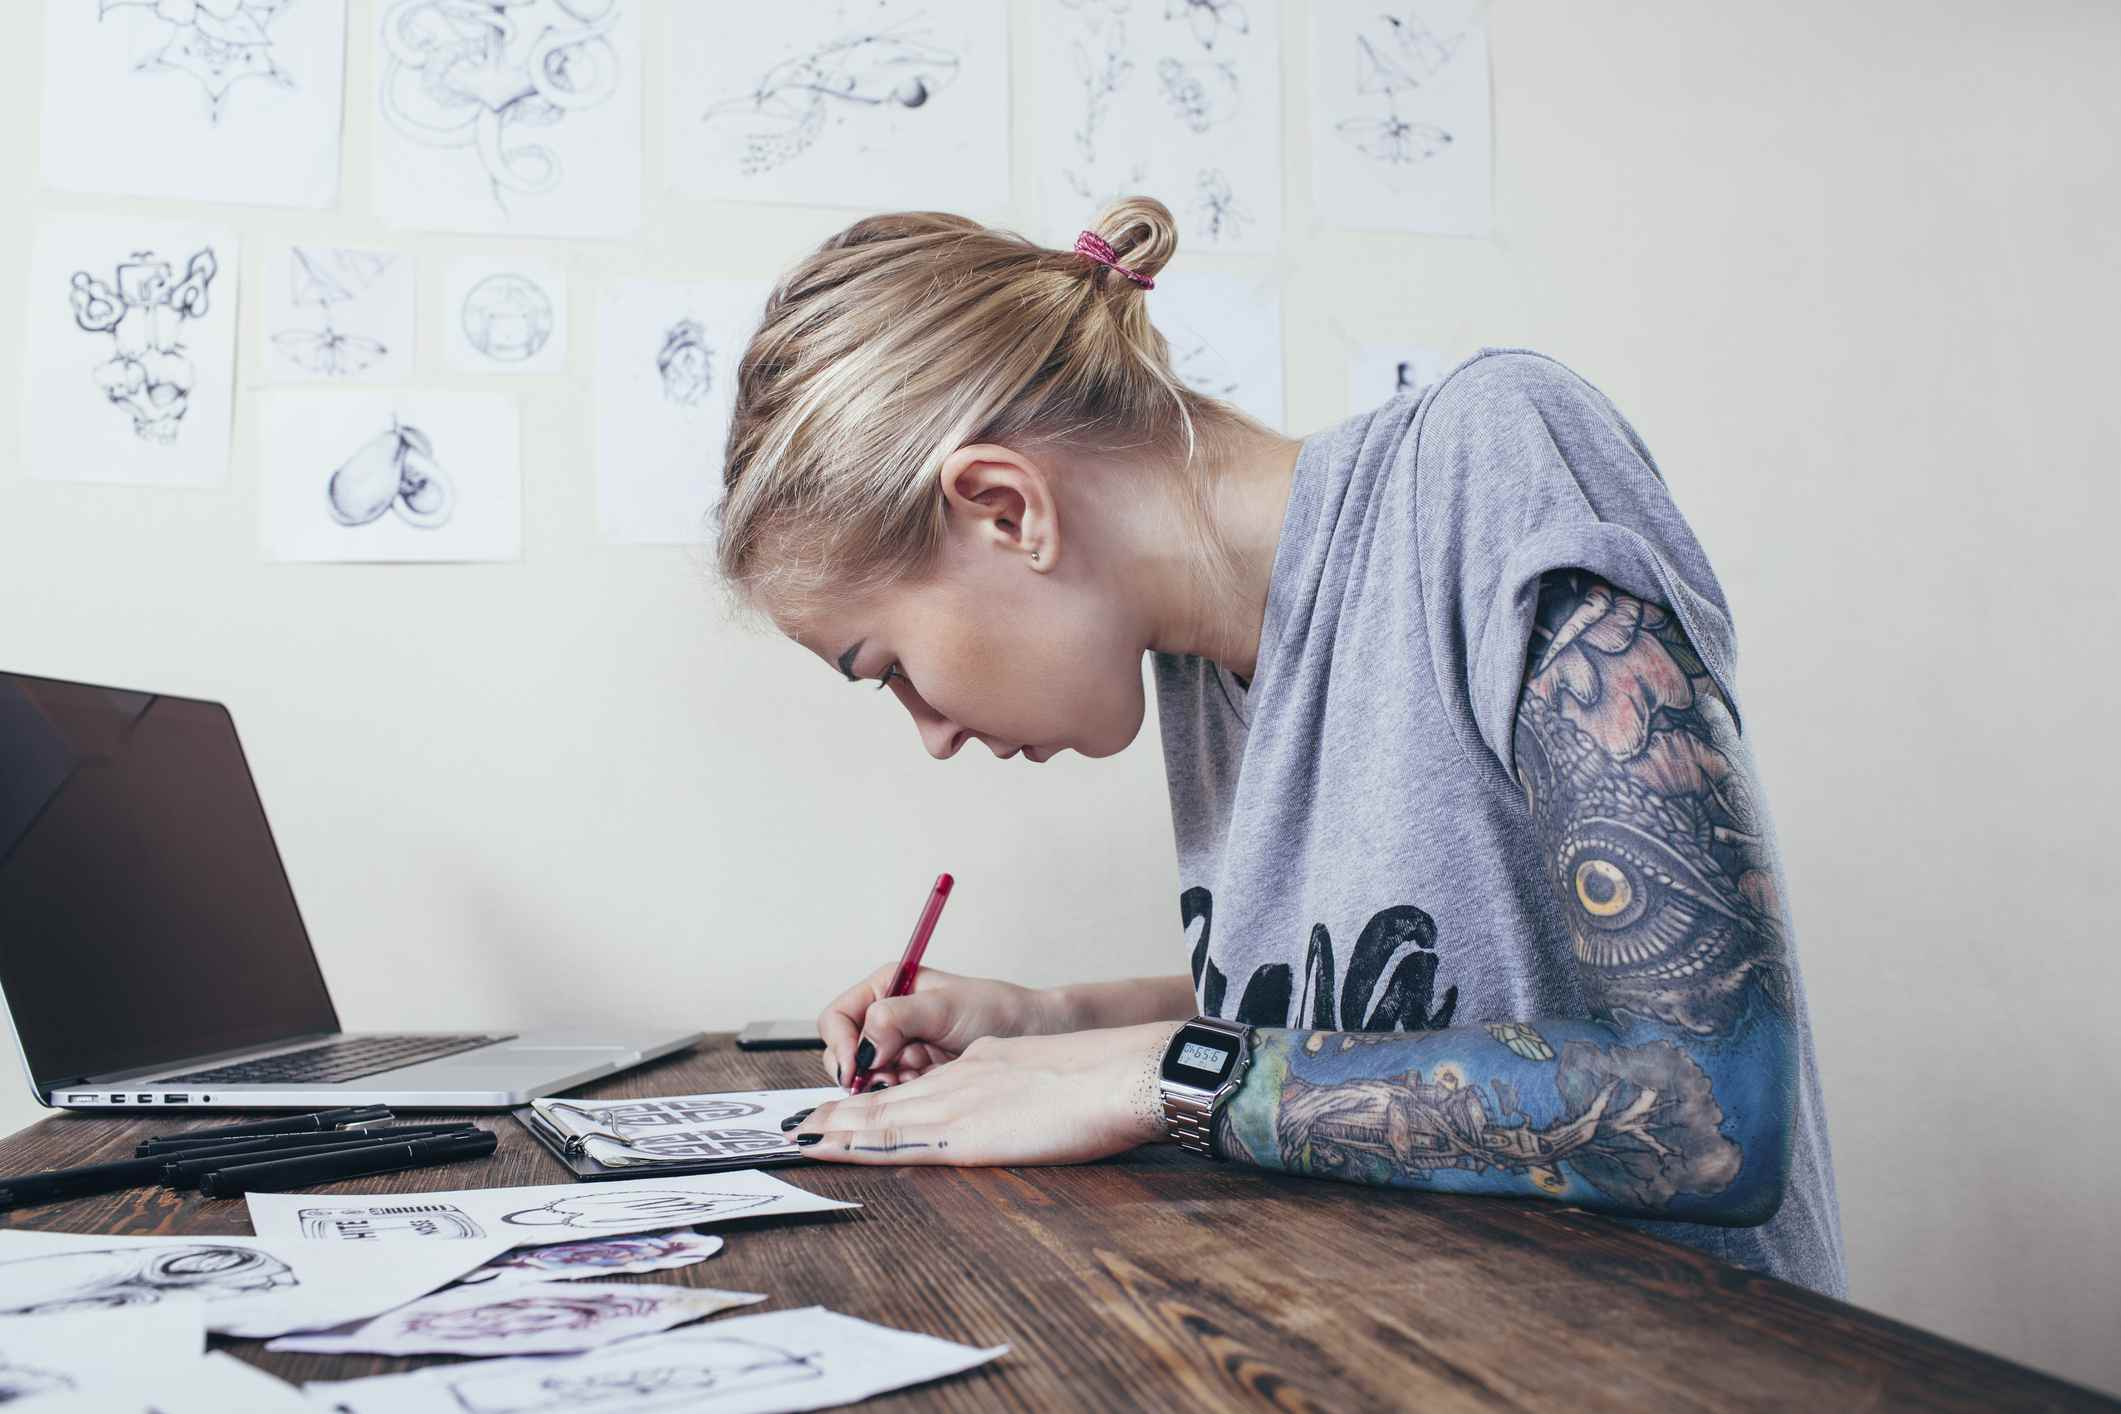 Personal Guide to Designing Your Own Tattoo